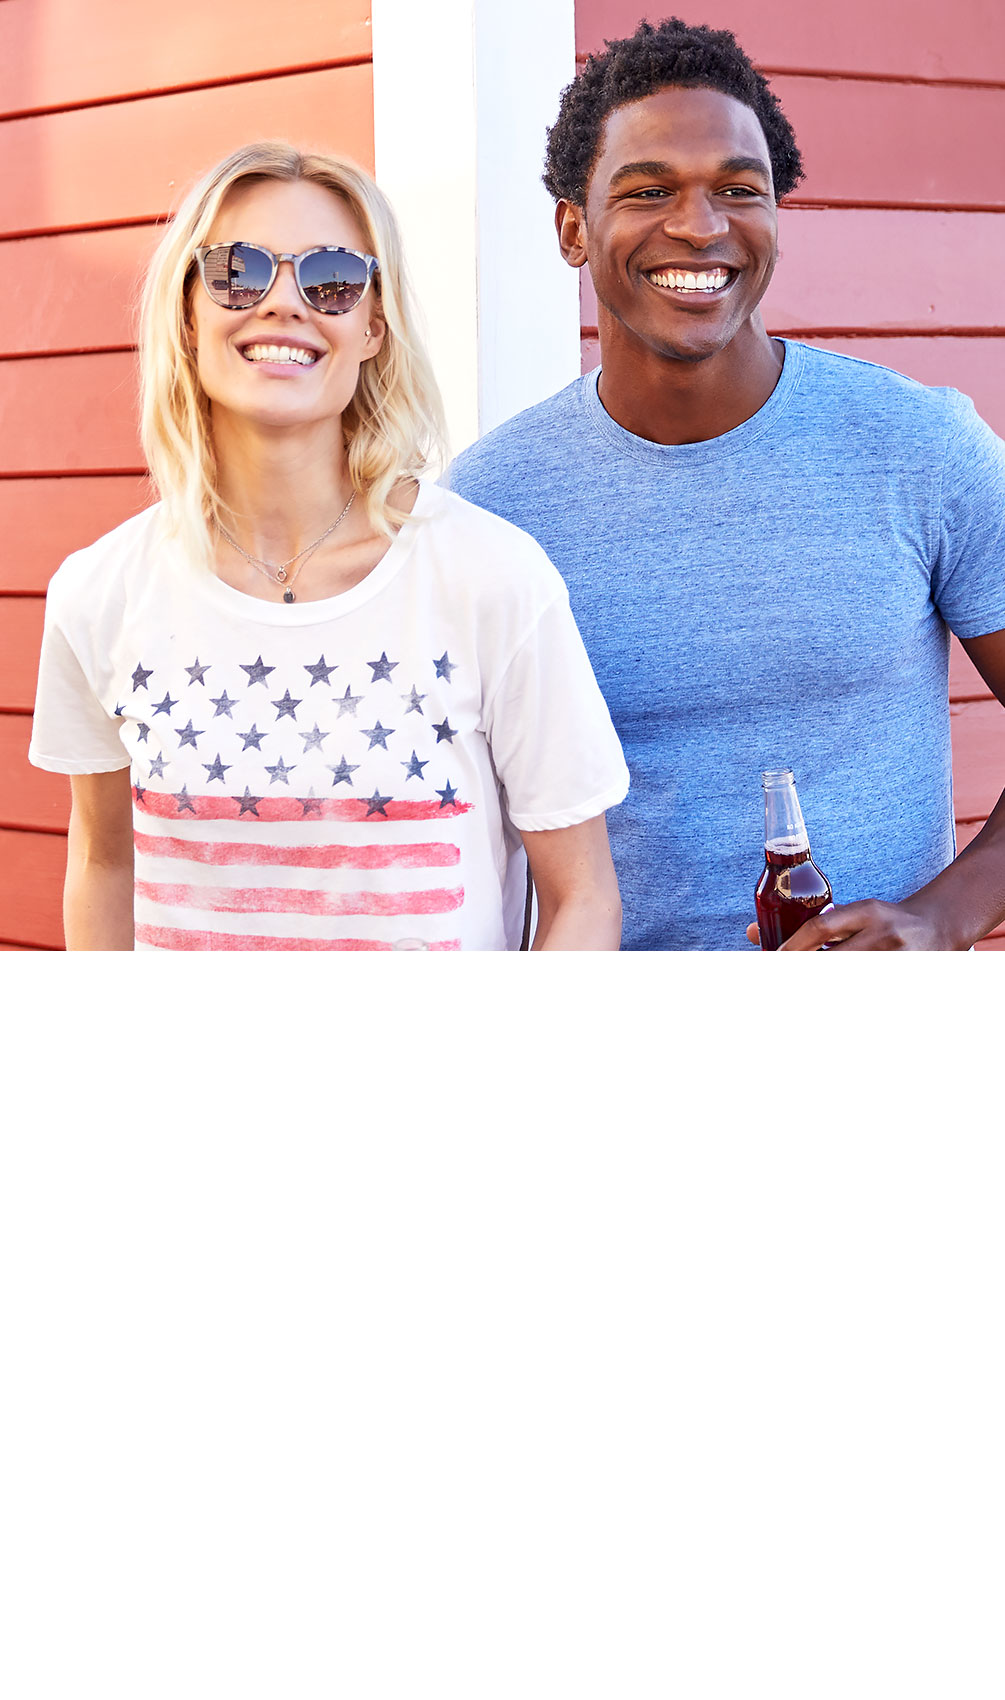 4ac0e6056c Girl and guy laughing wearing patriotic themed clothing from Buckle.